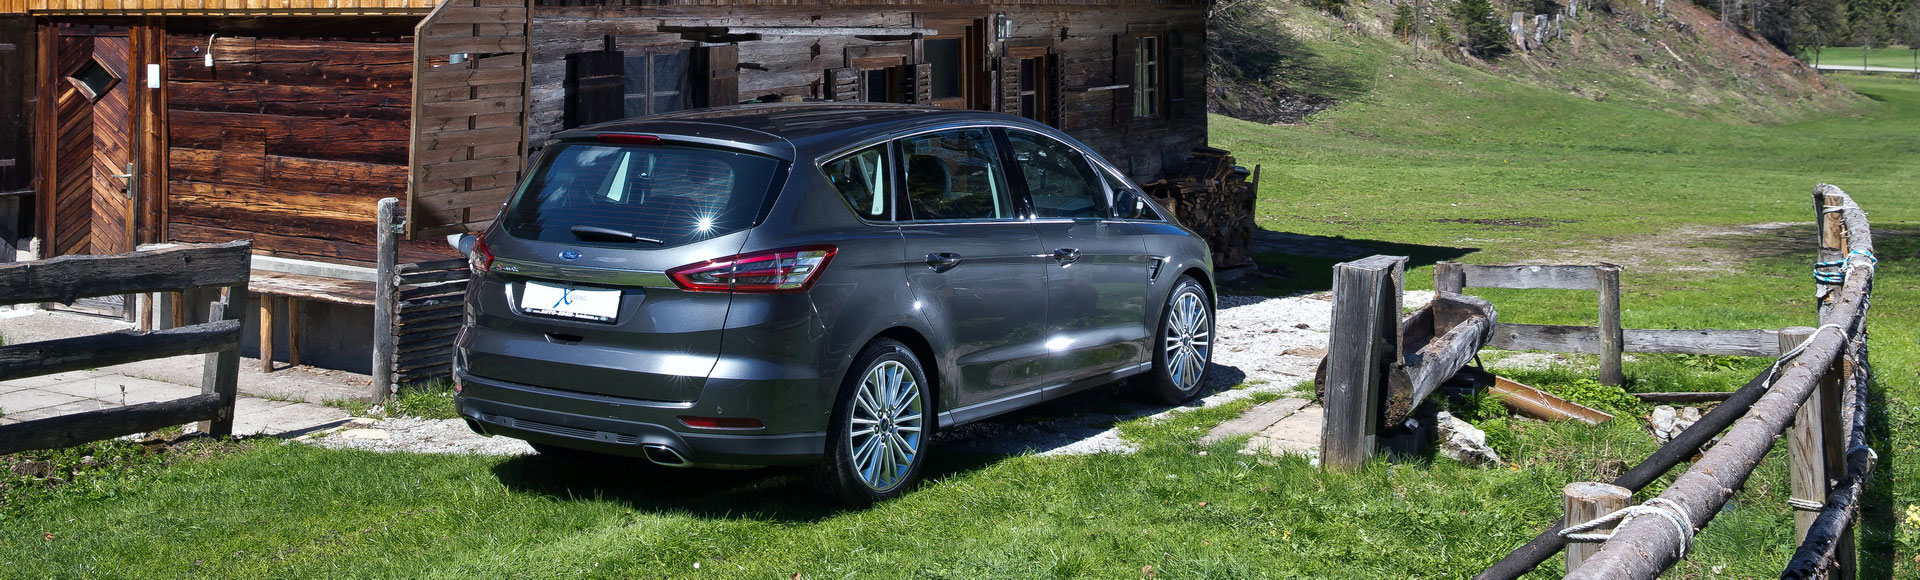 Ford S Max 2016 1428 Spring